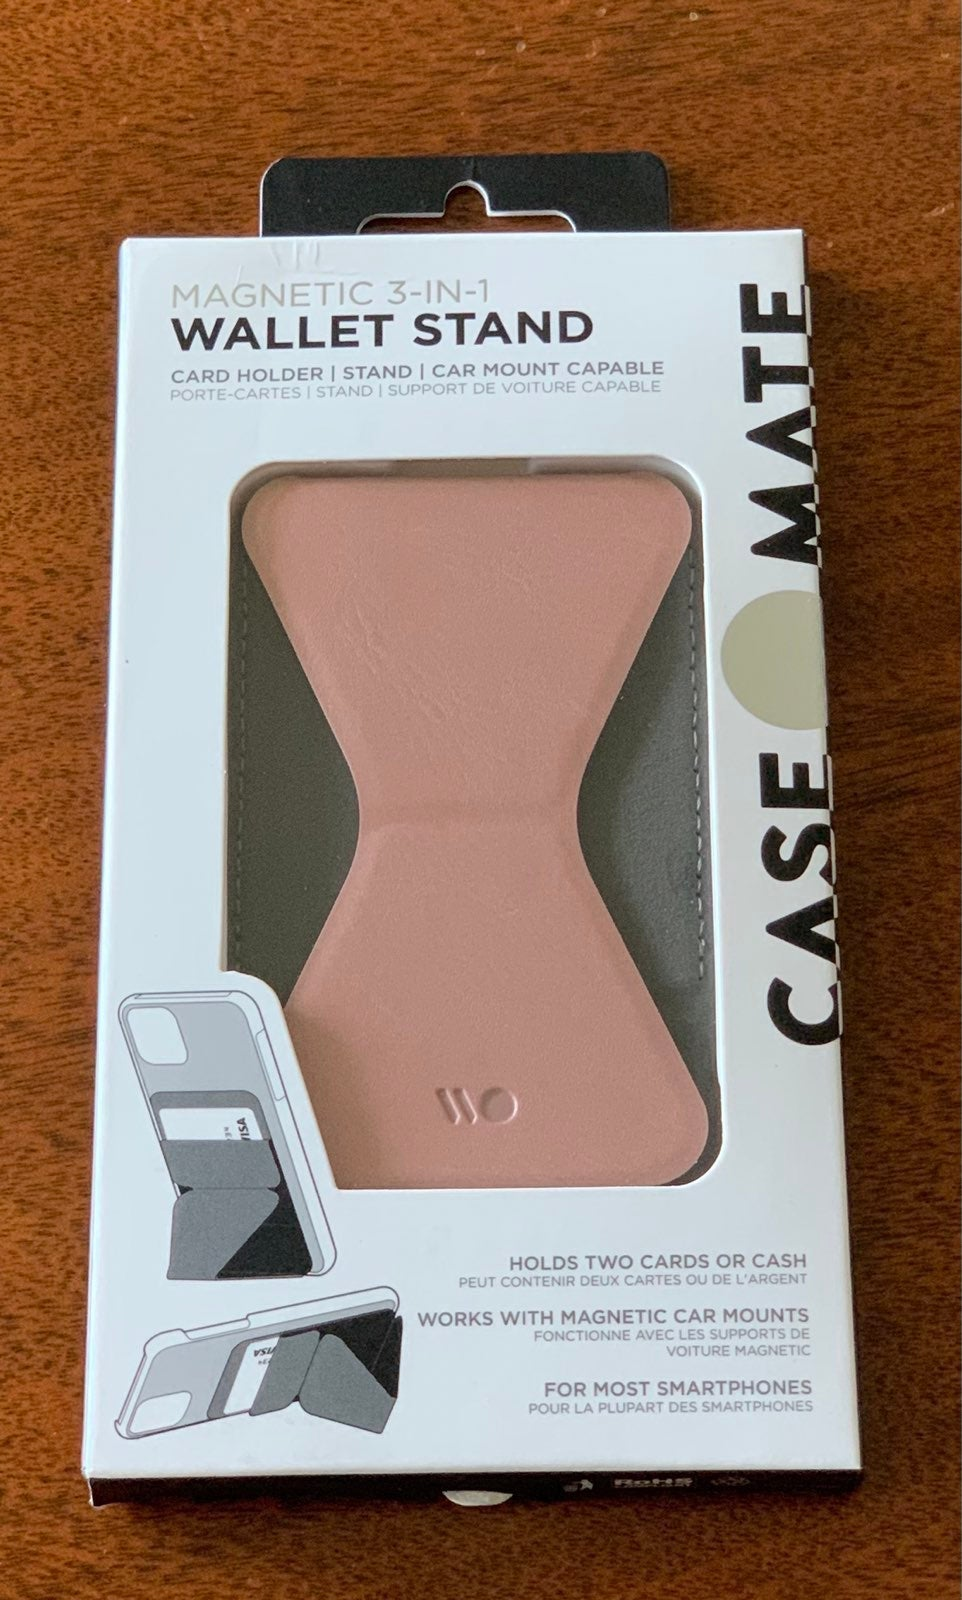 Casemate Magnetic 3-in-1 wallet stand